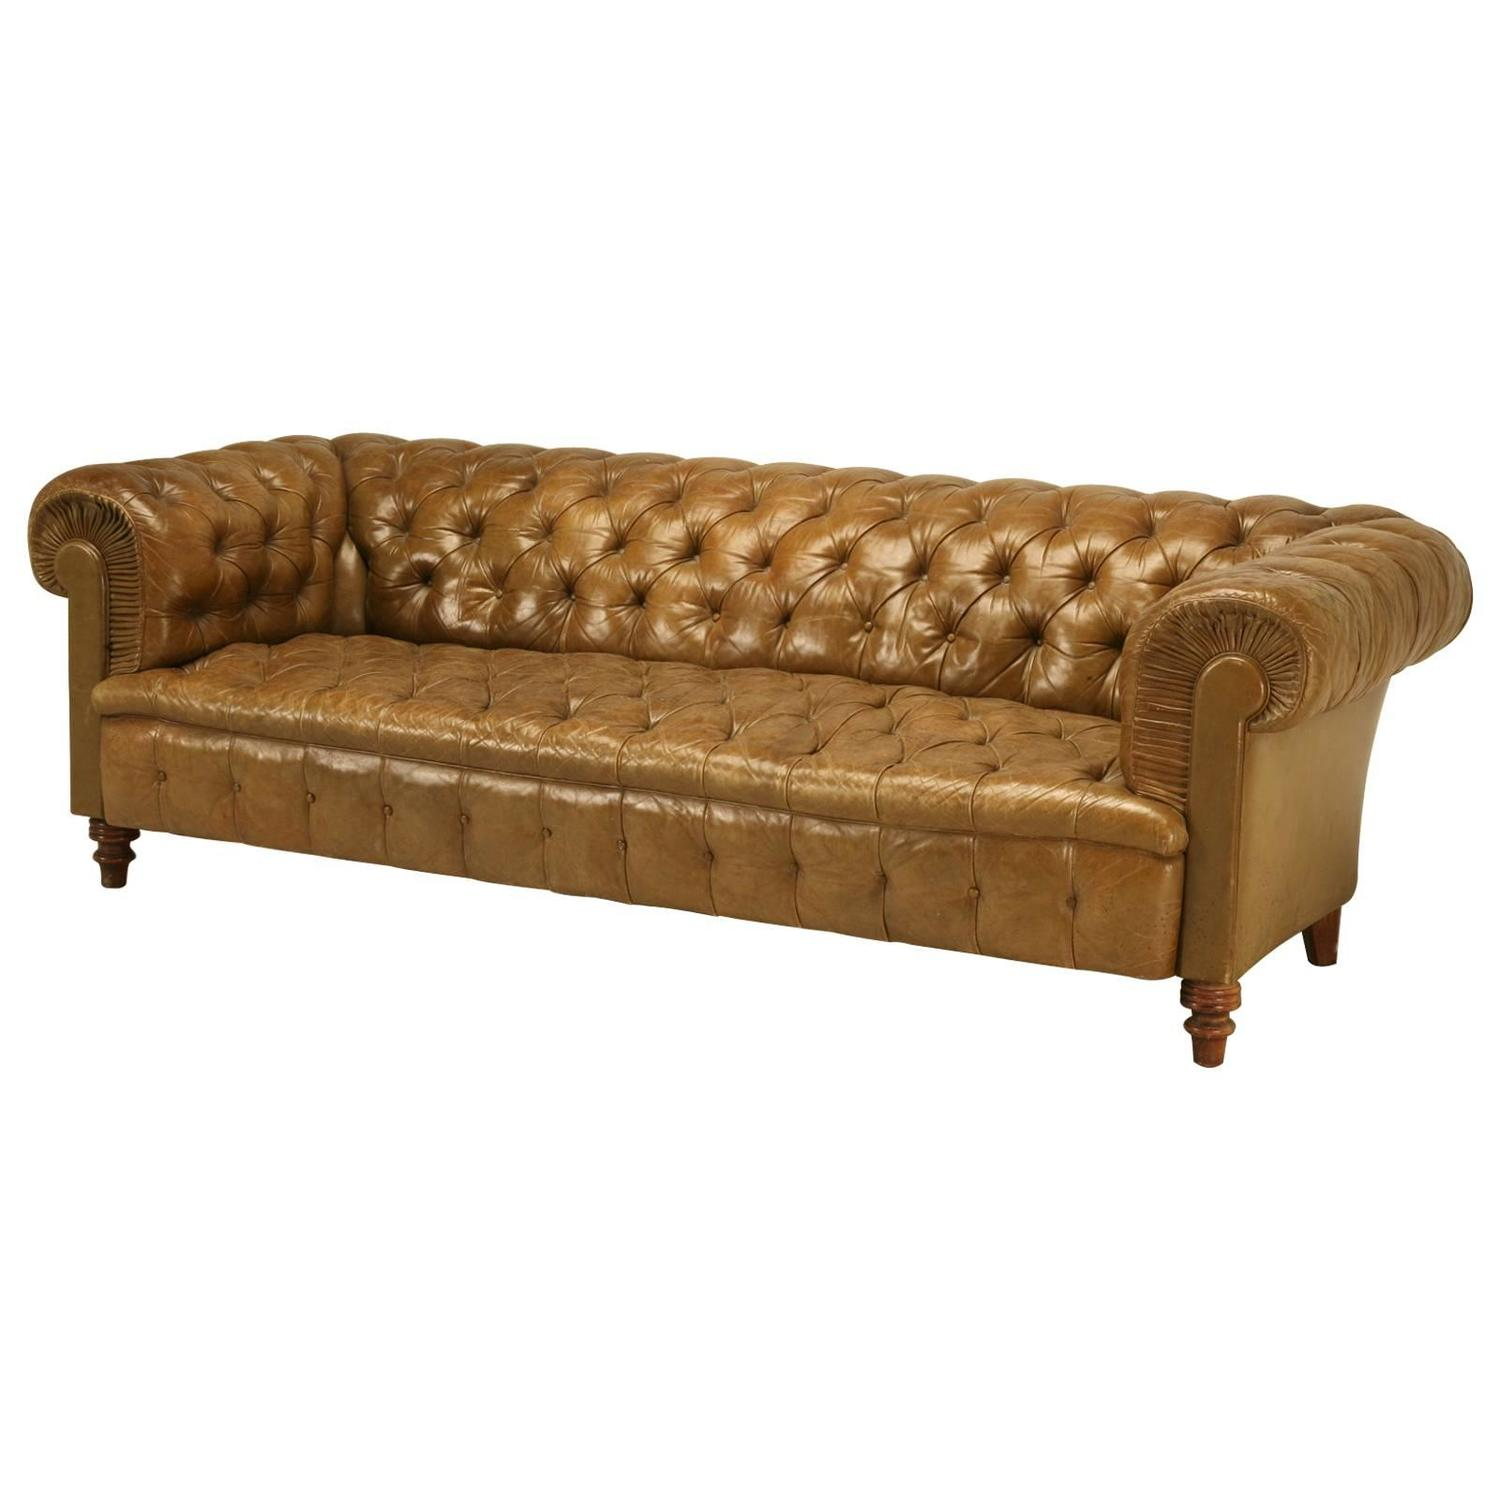 Chesterfield Tufted Leather Sofa Leather Tufted Chesterfield Style Sofa At 1stdibs